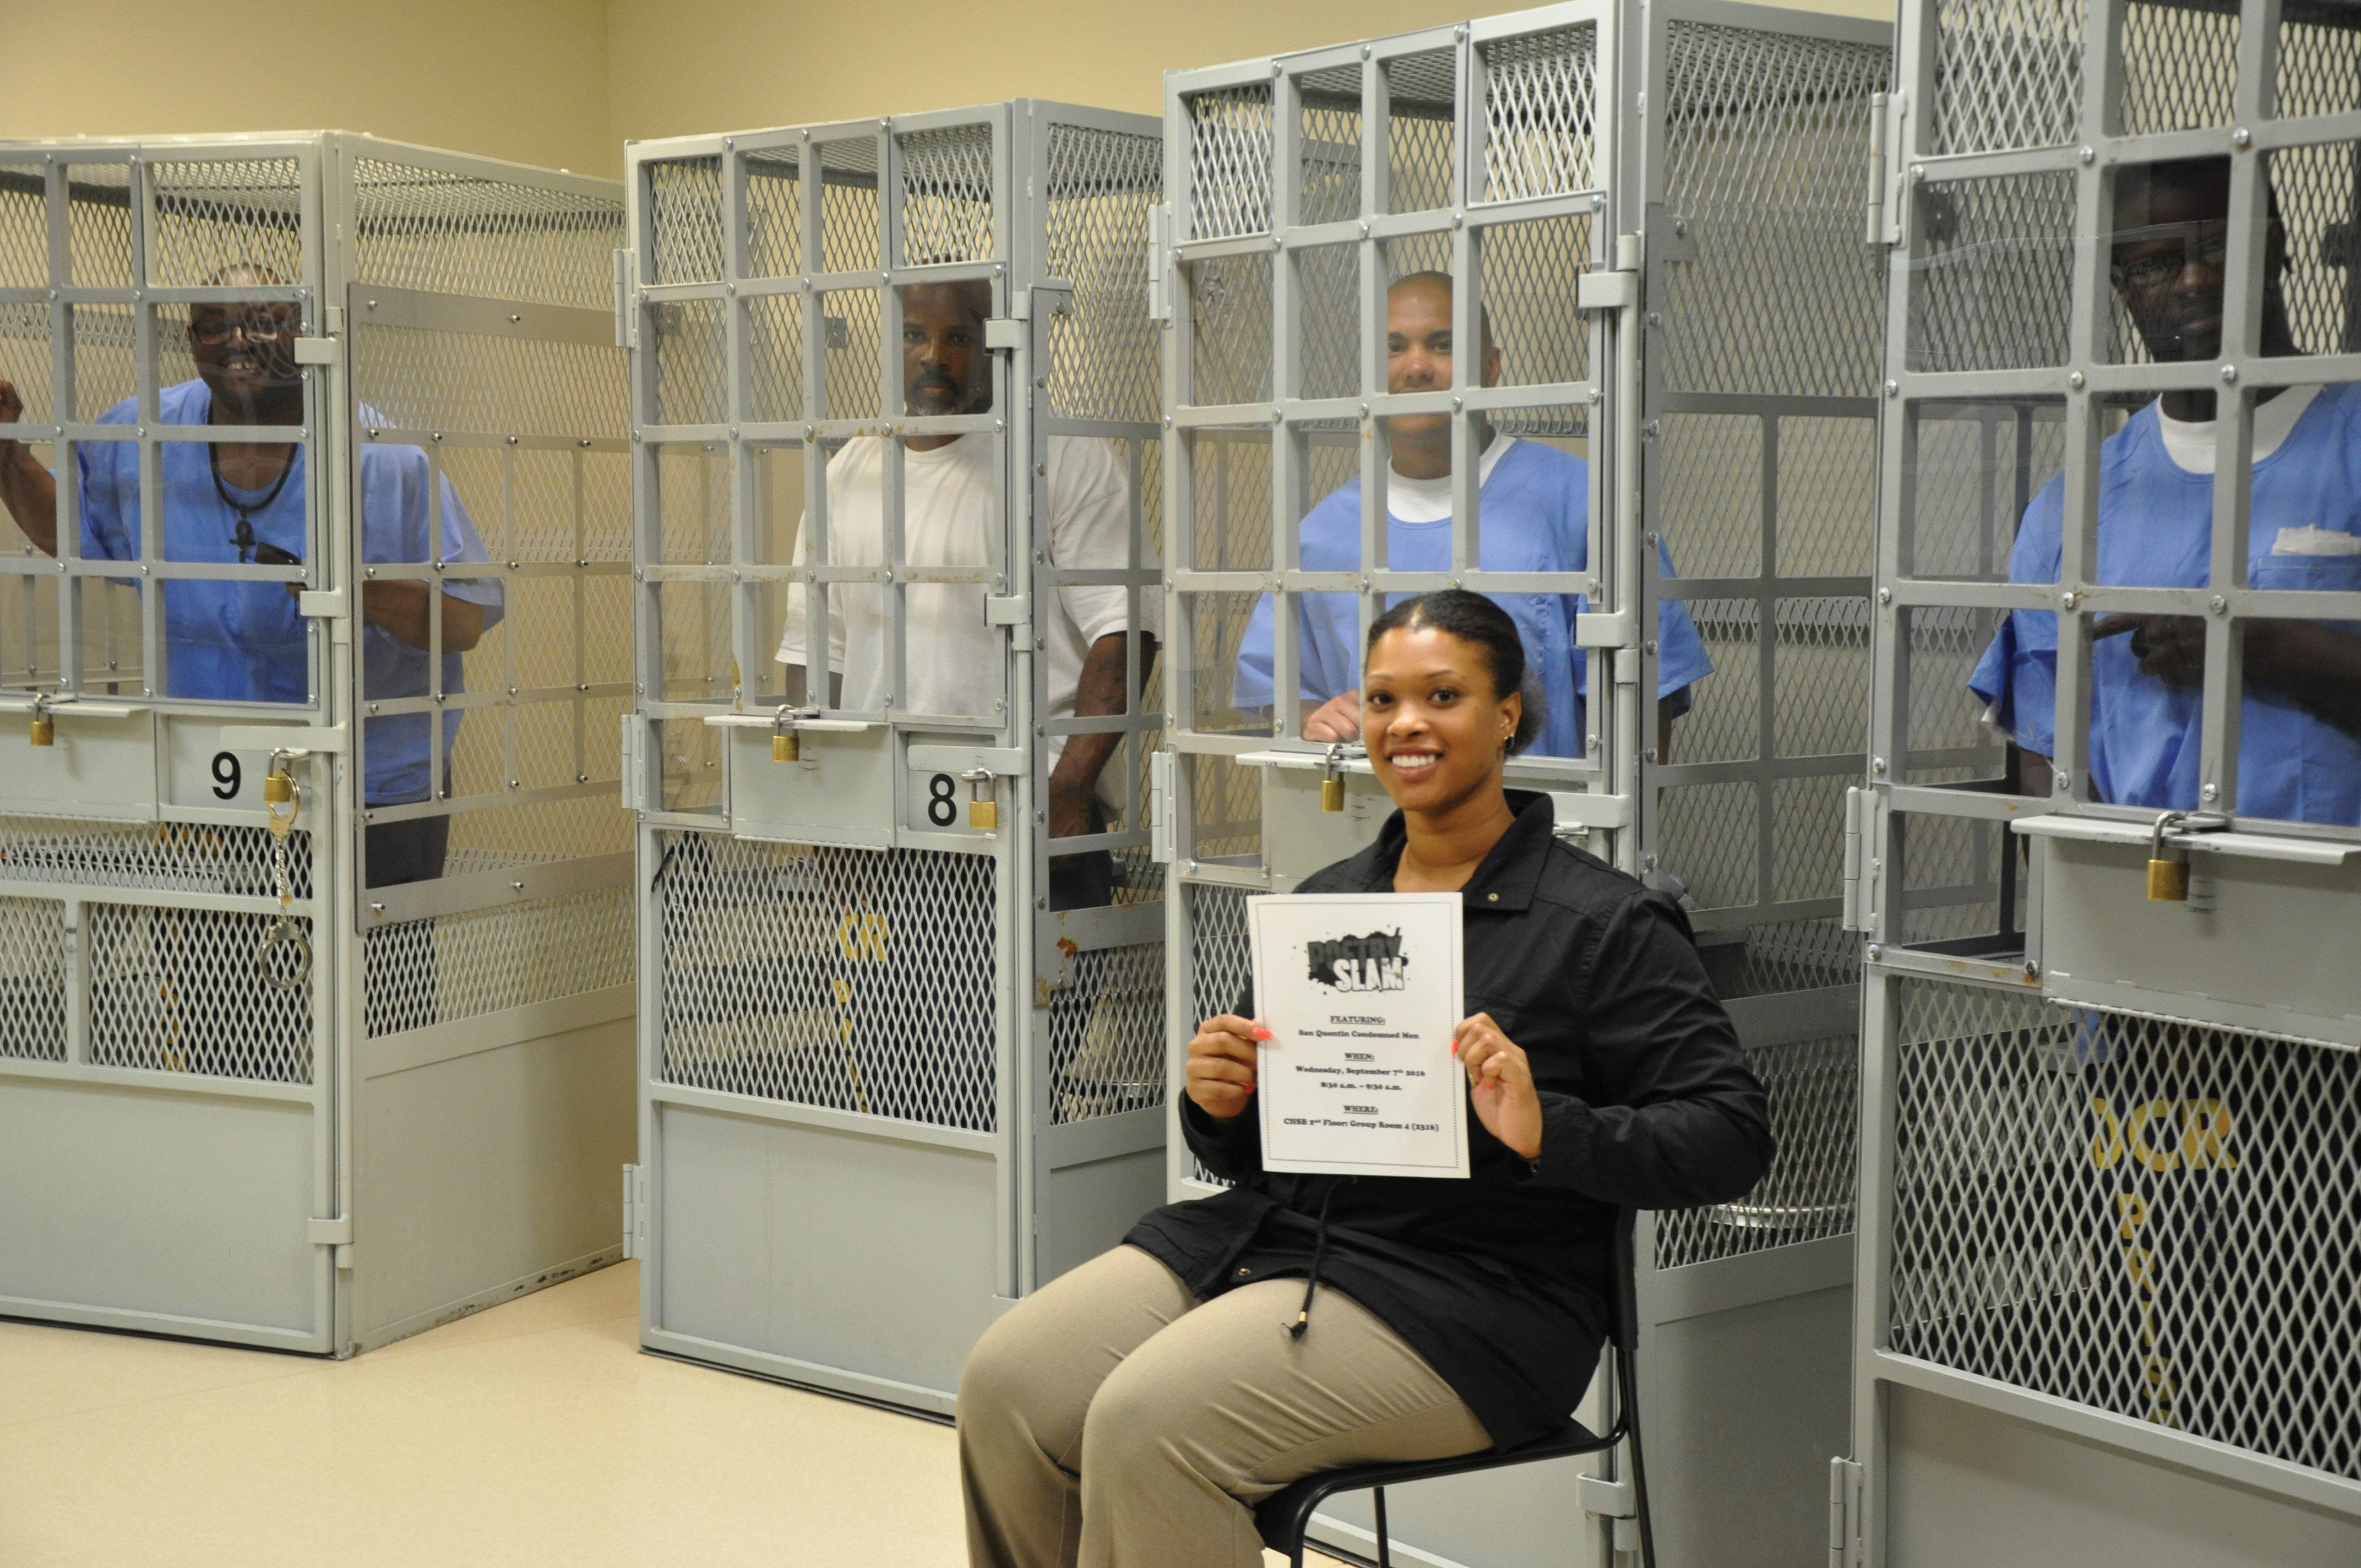 Death Row inmates in SQ's CHSB with recreation therapist D. Bell